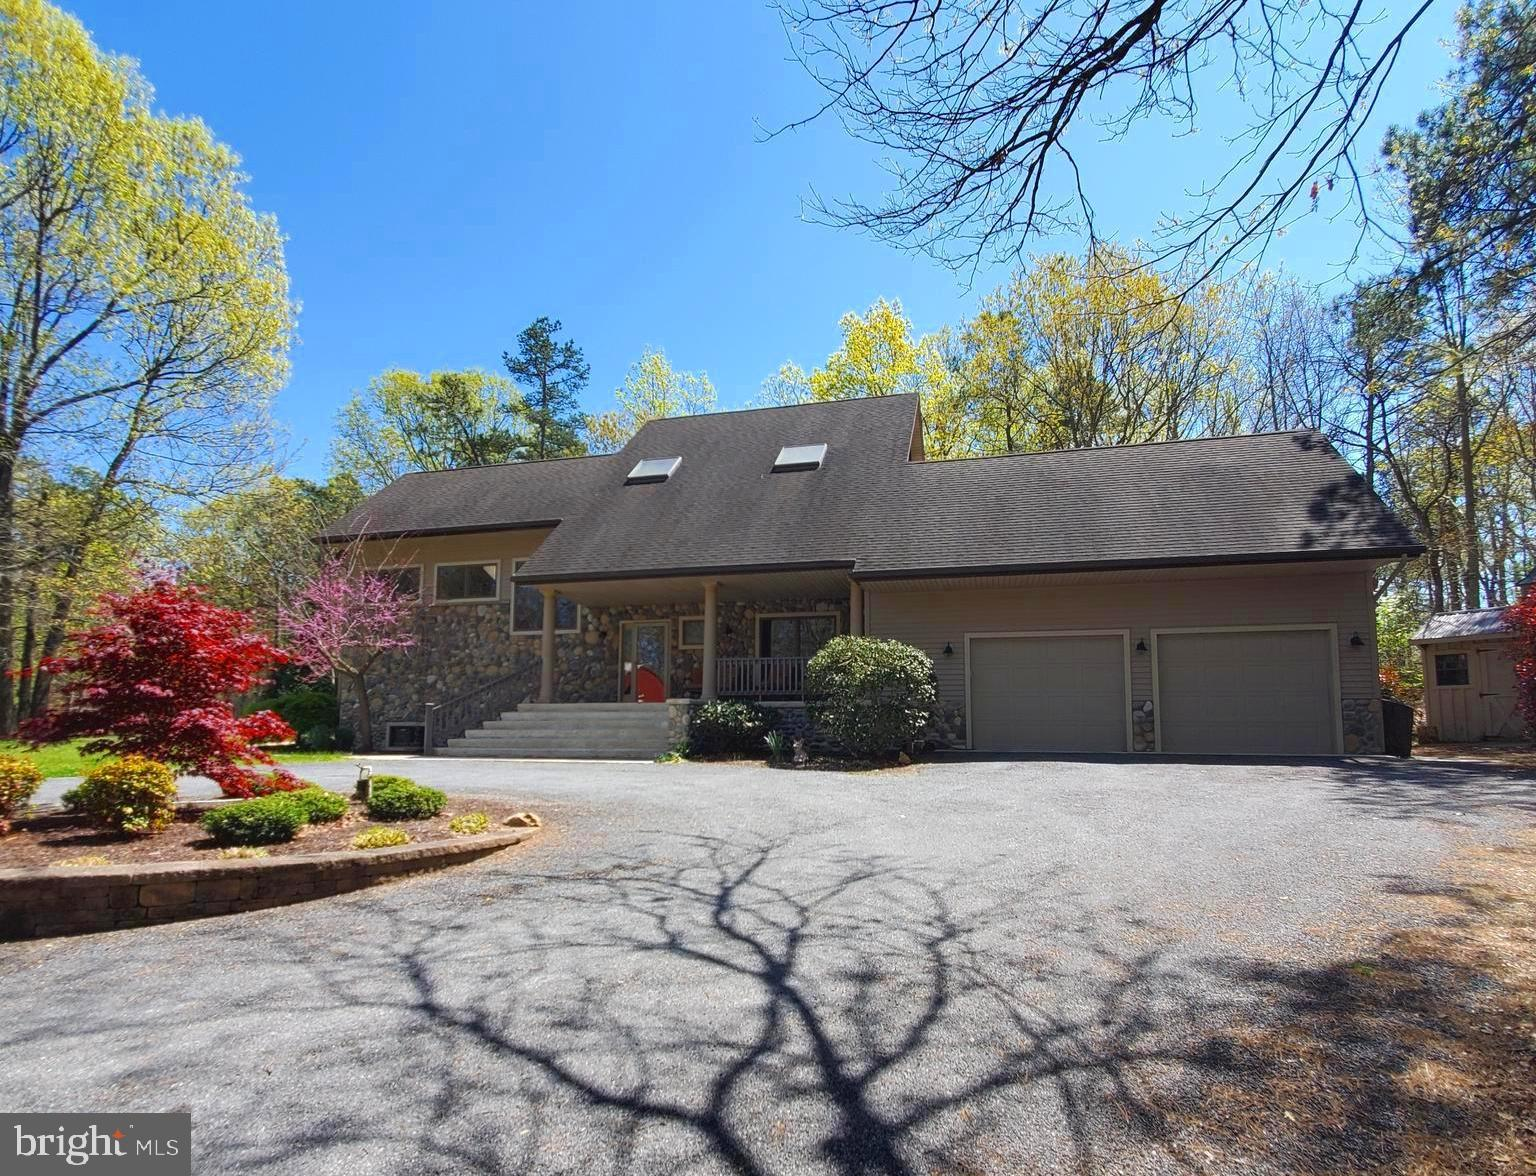 Lovely custom built contemporary 2 story, located in Alloway Twp.  Open floor concept, recessed lighting throughout, oak hardwood floors, tile and carpet.   Sunroom with radiant tile floor heating.  Living room with beautiful atrium windows and highly efficient wood stove open to dining area.  Beautiful, large Anderson windows throughout the home providing an abundance of sun light.  Master suite on first floor with large walk-in closet leading to master bath and bedroom.  Laundry on main floor.  Loft on second floor leading to 2 bedrooms and a full bath which boasts a 6 foot shower tub.  Ceiling fans throughout.  Meticulous custom Beadboard ceilings.  Ash wood custom cabinetry in kitchen and baths.  Accessibility features such as wide doorways and ramp.  Full basement built with Superior walls. Hardscaping around home leading out to the back yard.  Steel barn with three stalls and ample room for hay, tractor(s) or car(s).   Small fenced in pasture area.  Gutter guards on home and out-building.   The wooded area has nicely cleared paths for horse back riding and recreation. Make your appointment today!